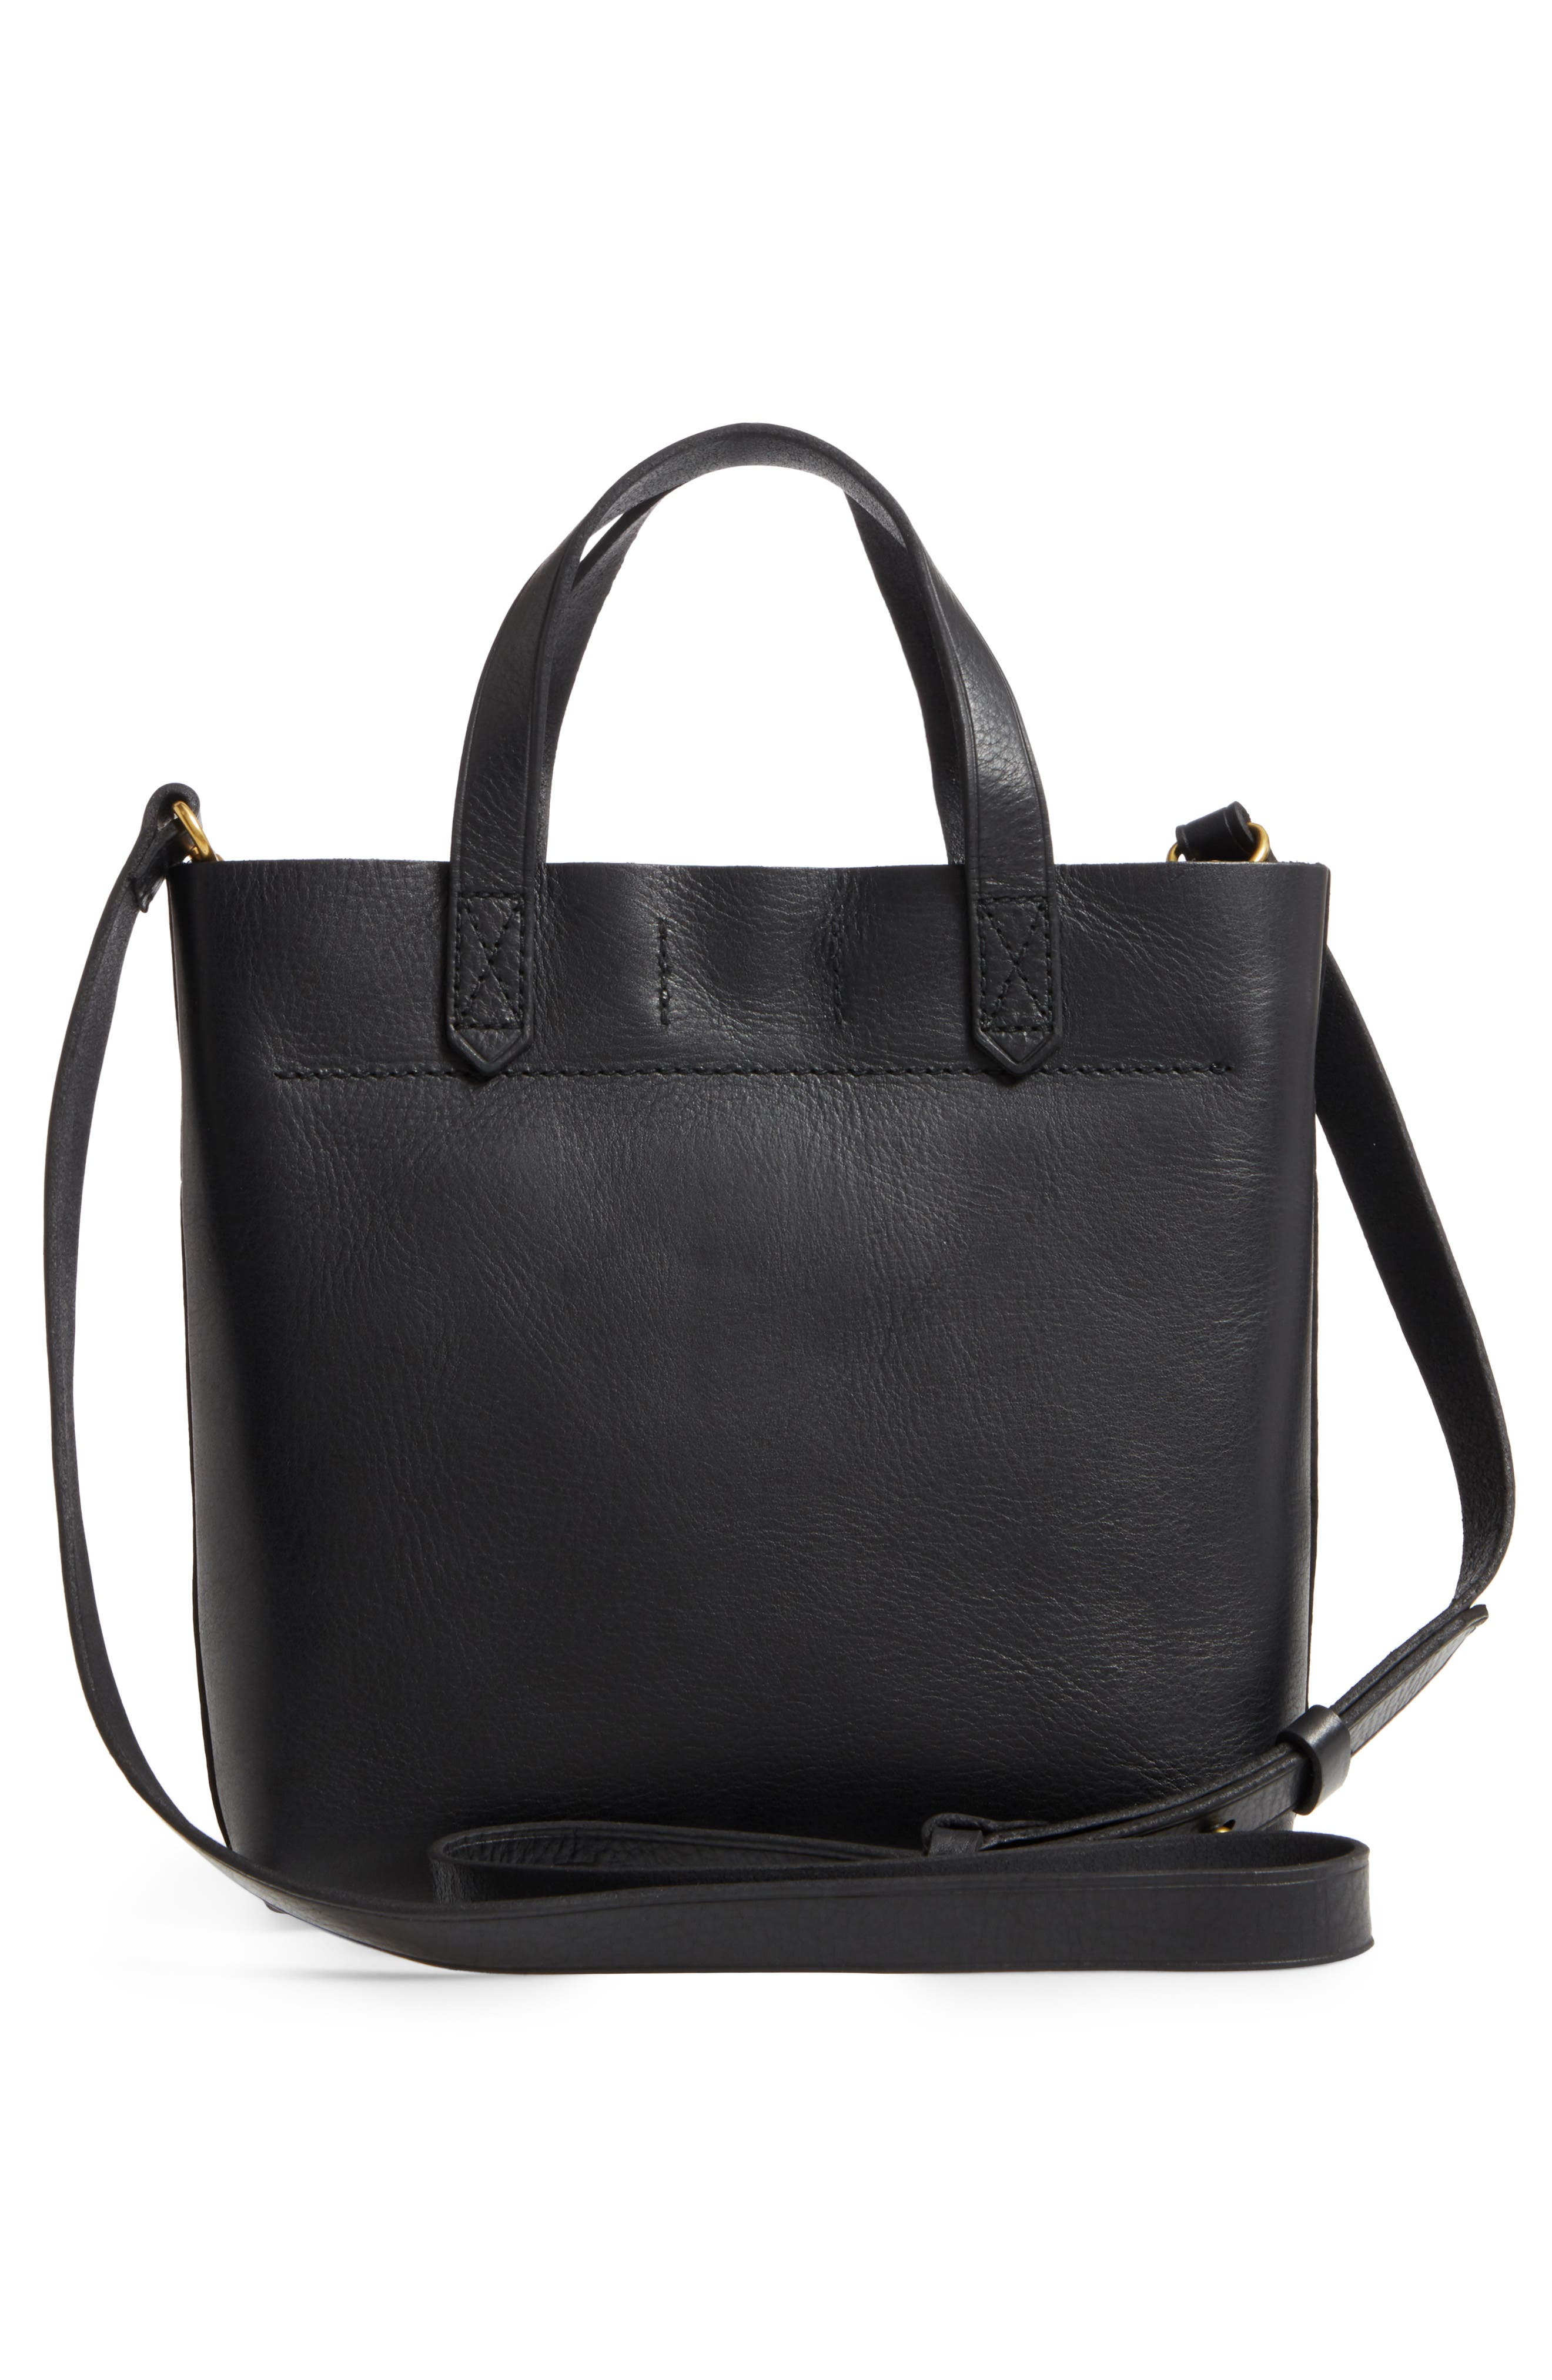 MADEWELL, Small Transport Leather Crossbody, Alternate thumbnail 4, color, 001